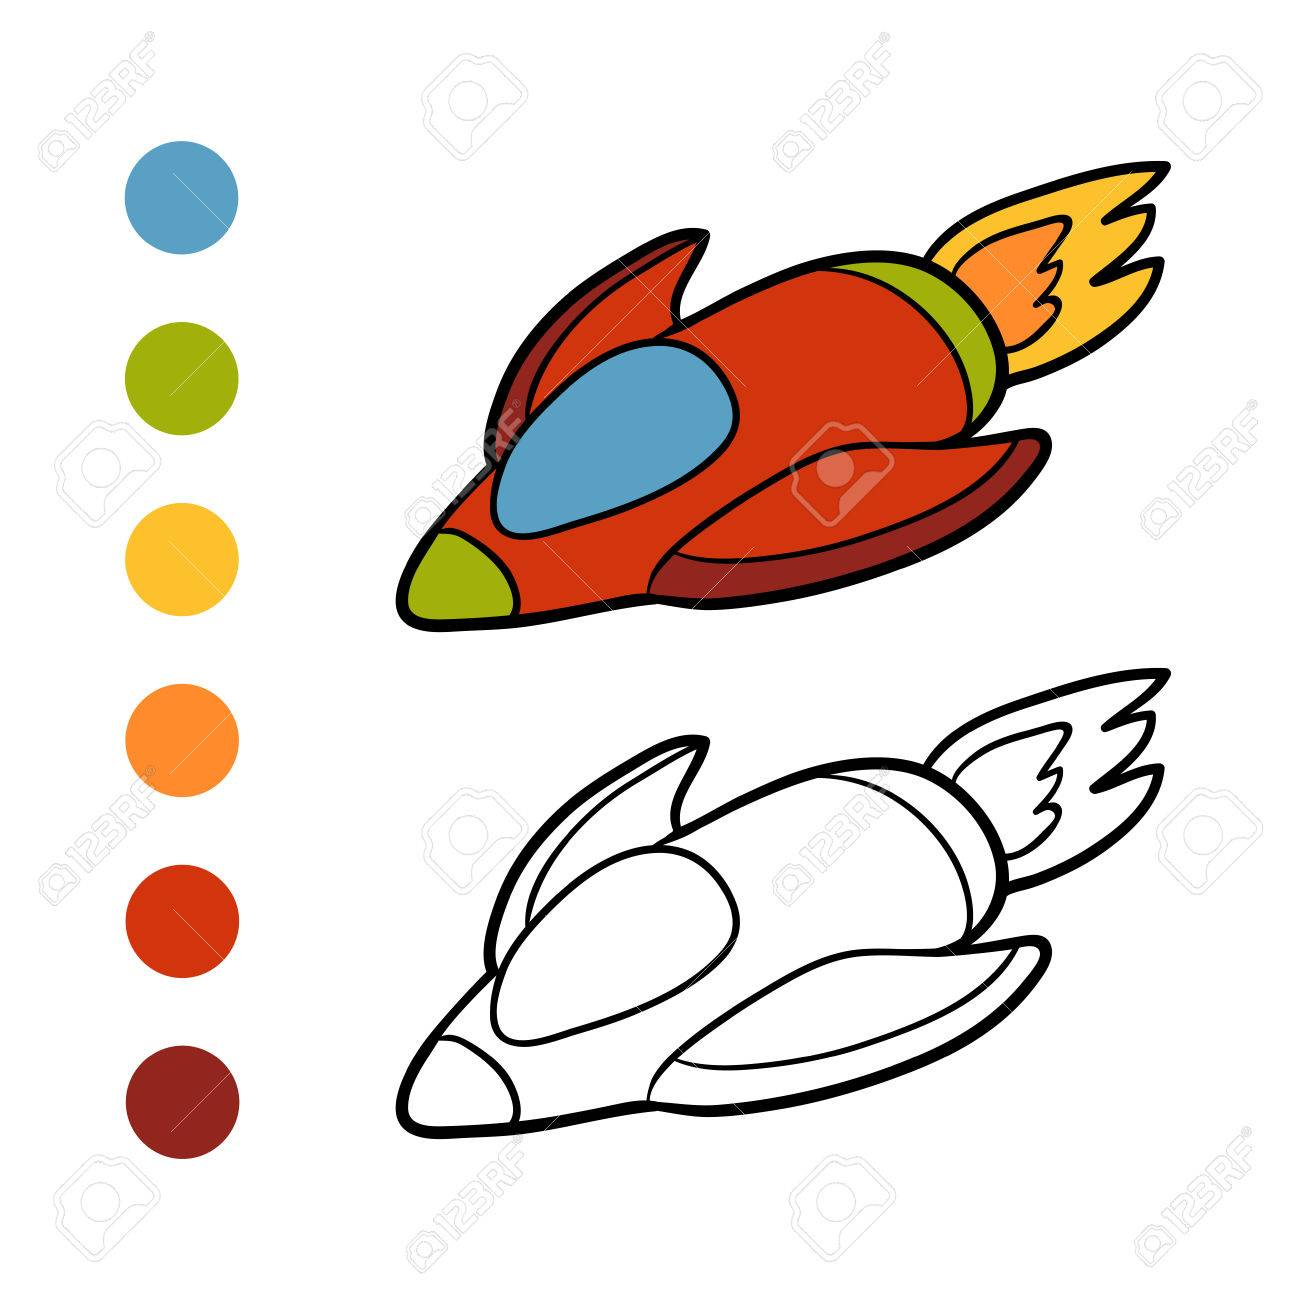 Coloring Book For Children, Spaceship Royalty Free Cliparts, Vectors ...